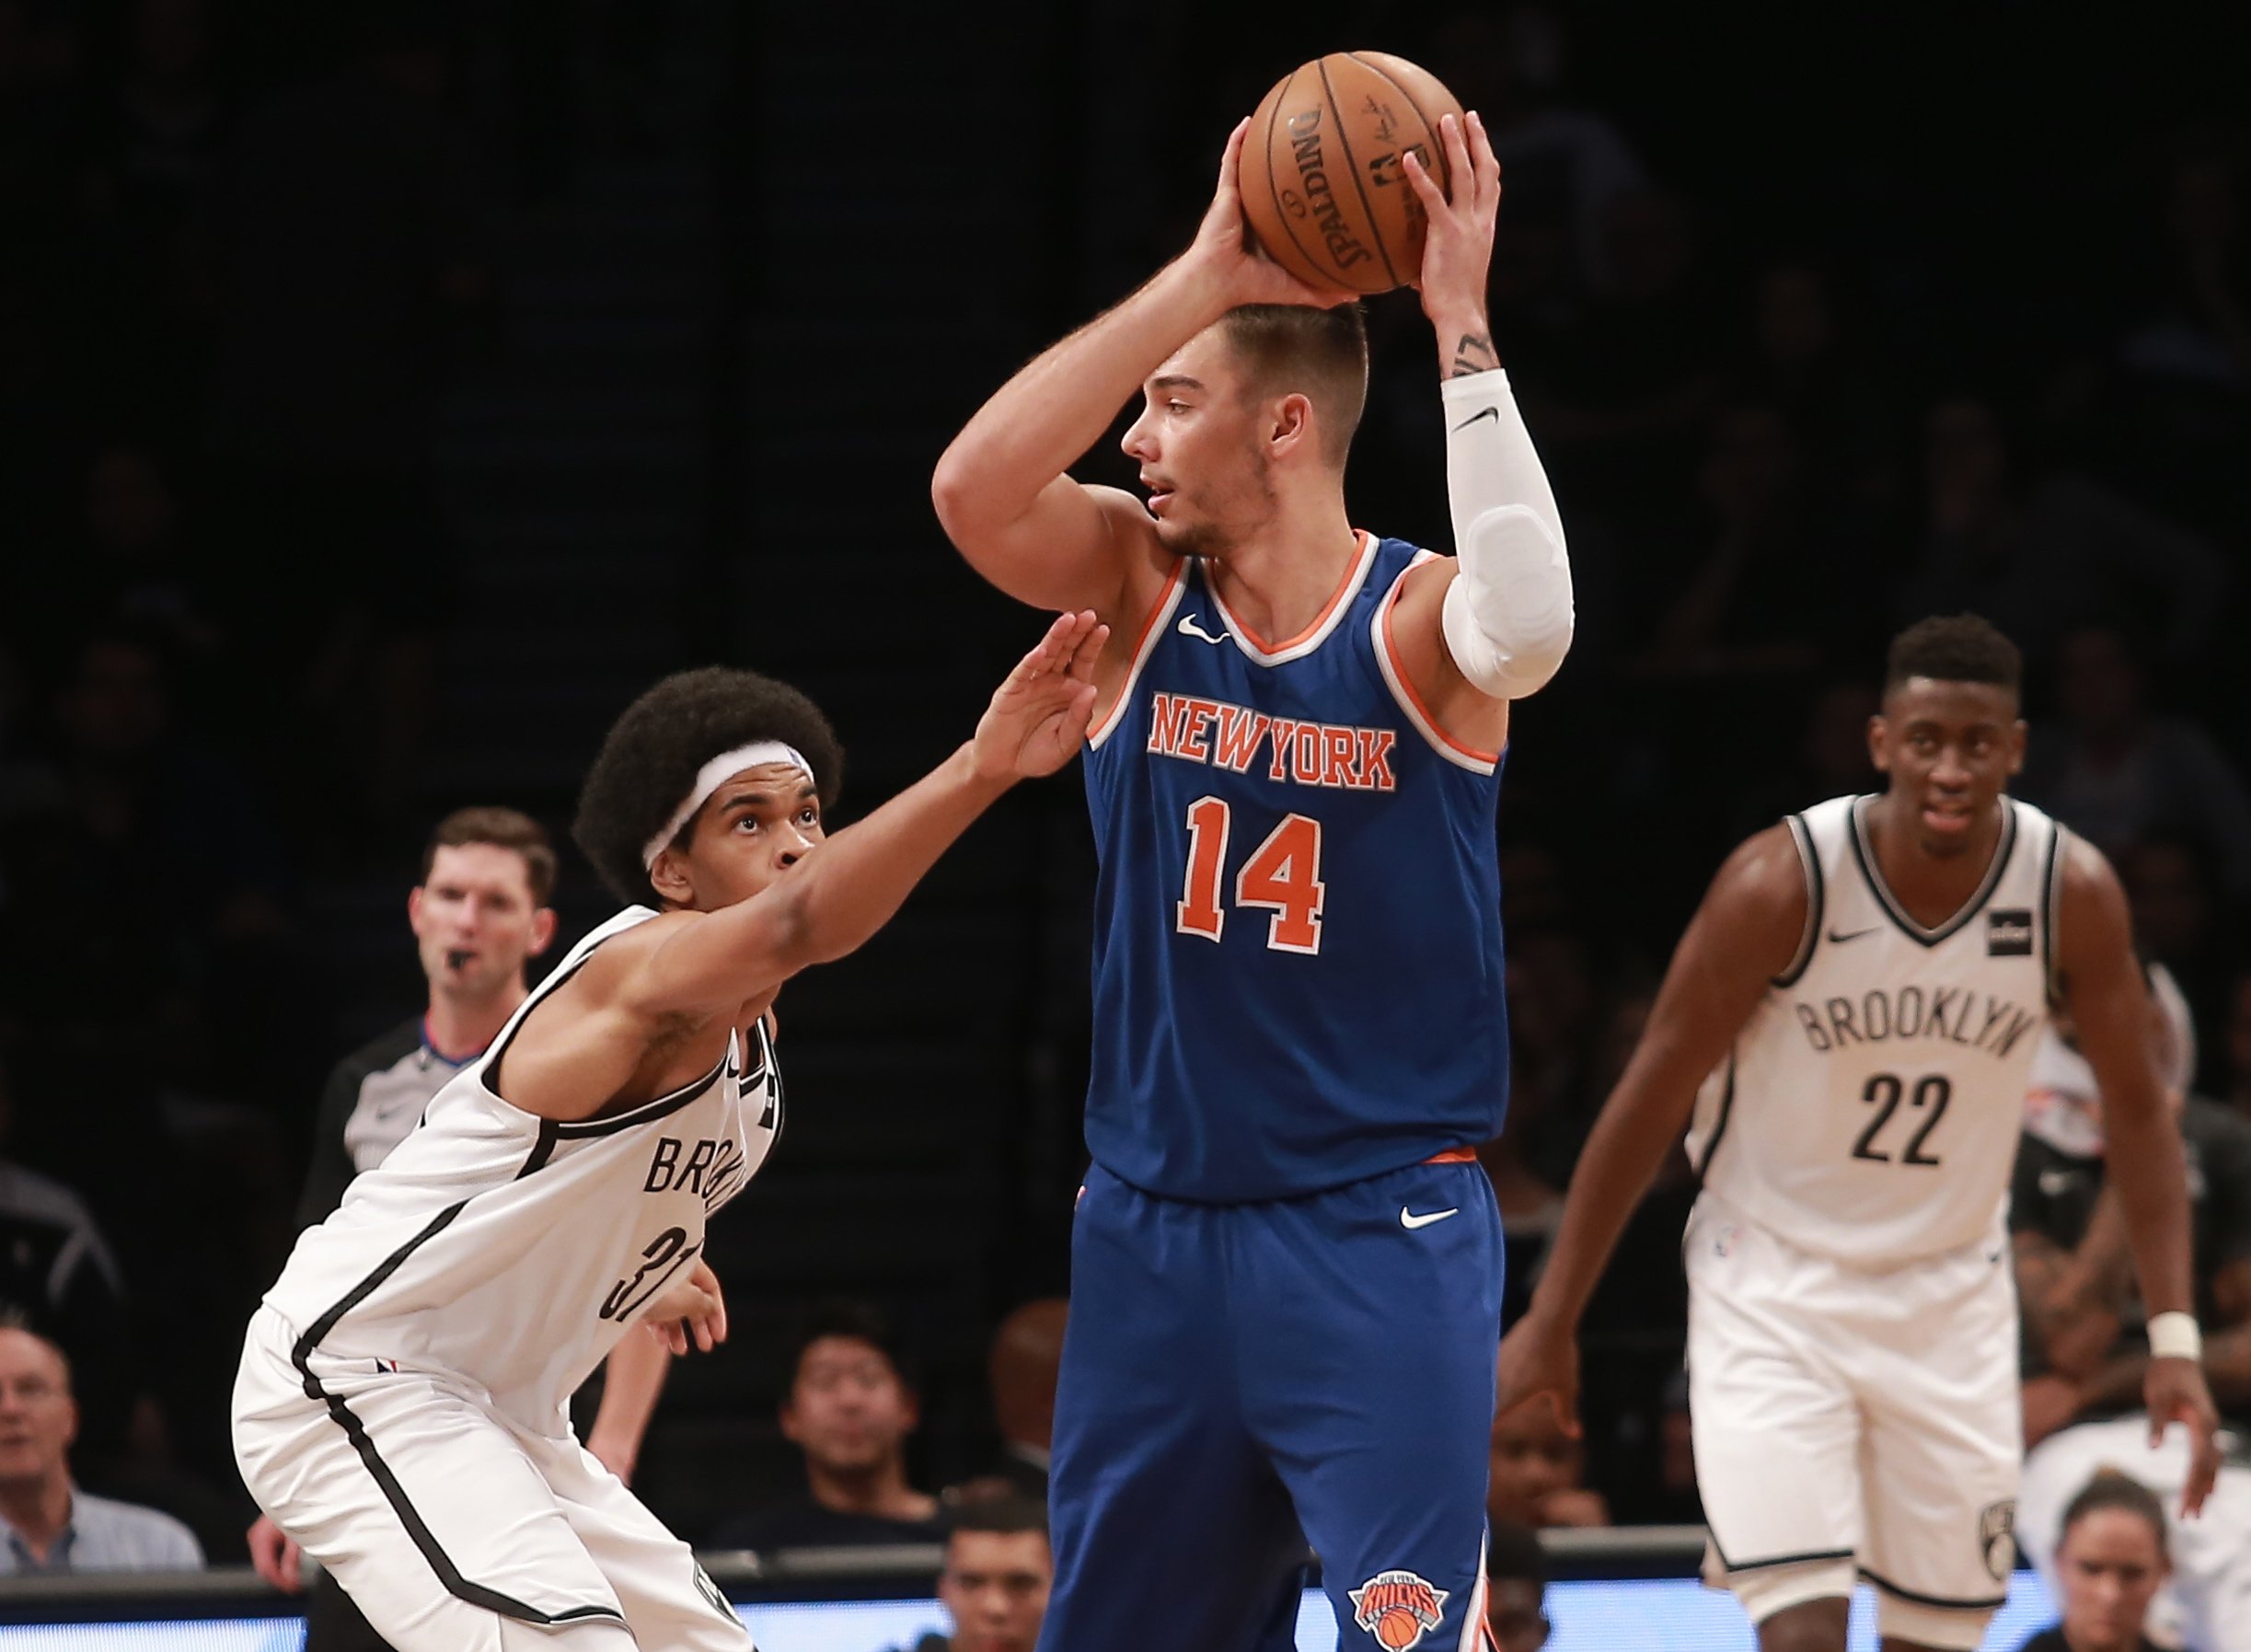 Would Willy Hernangomez Benefit From A Stint In NBA G League?